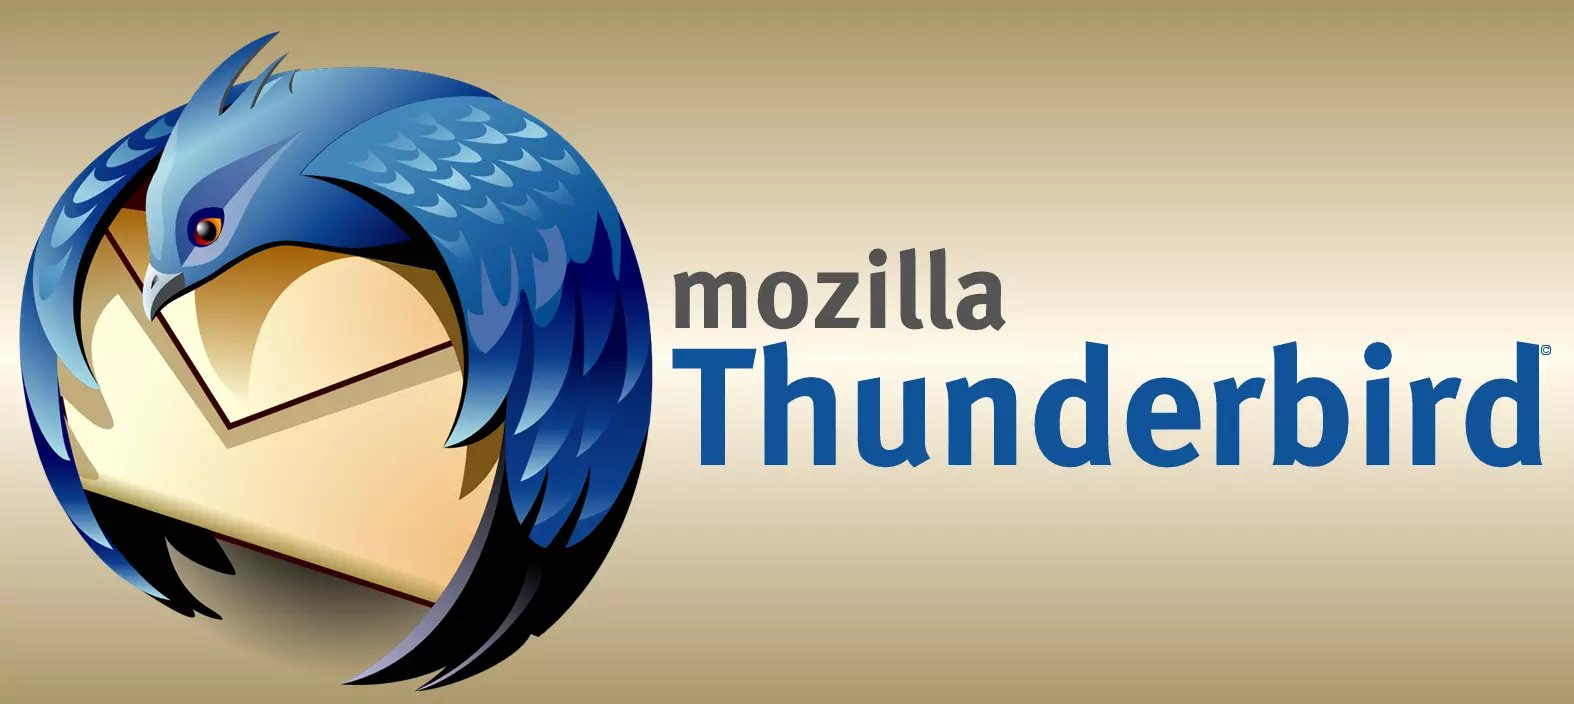 How to minimize Mozilla Thunderbird to tray, even if FireTray extension no longer supports current version